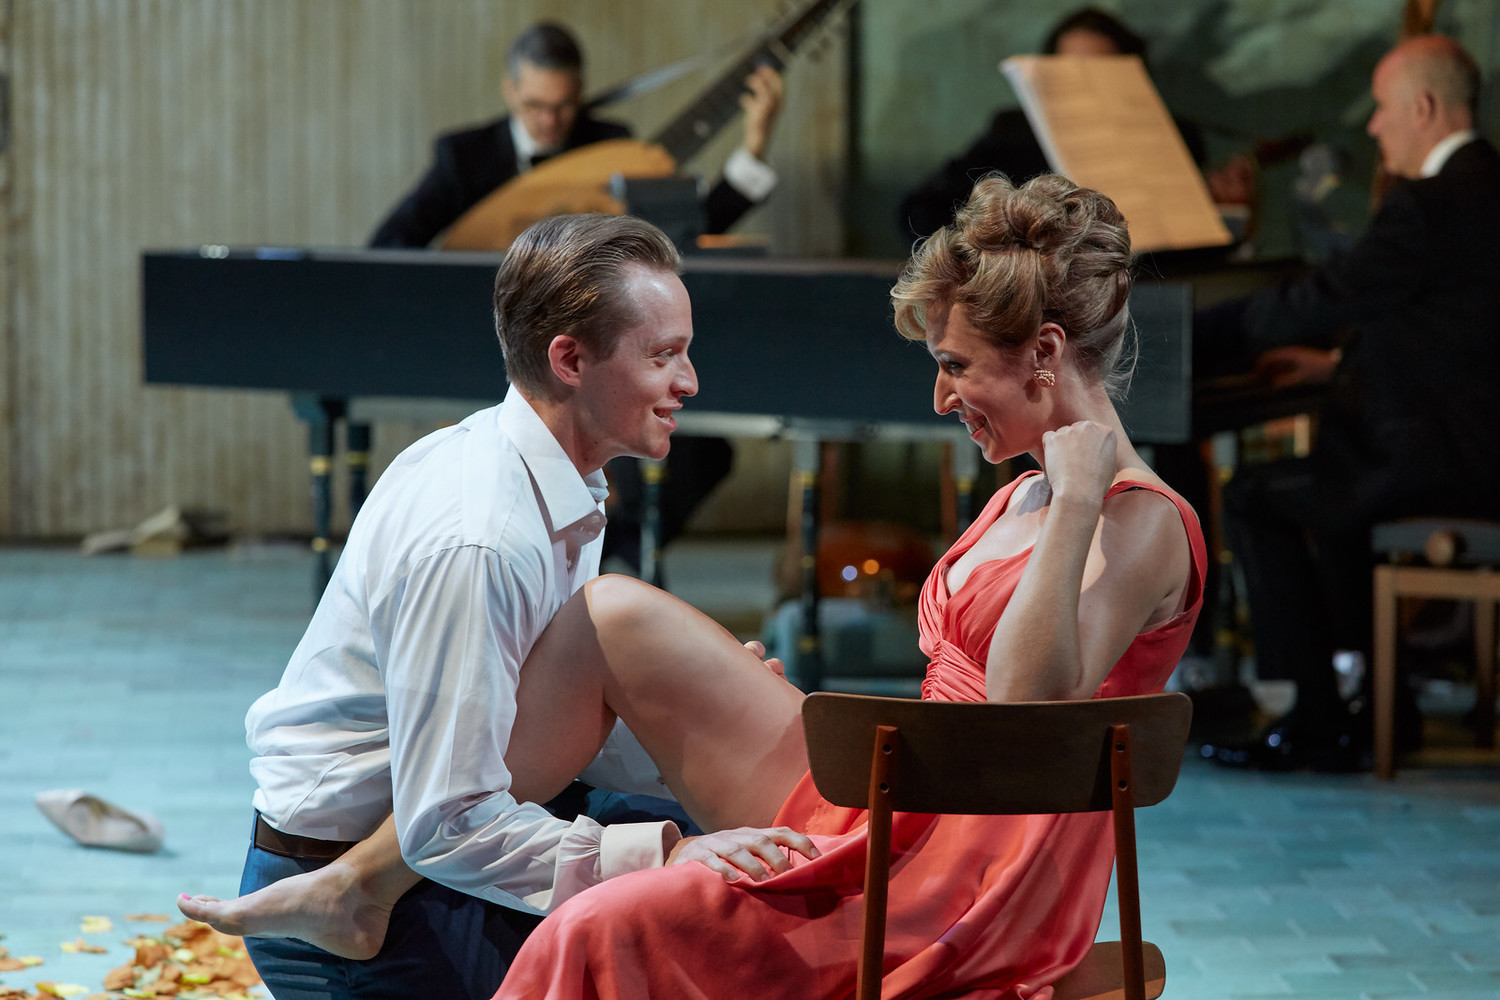 BWW Review: THE CORONATION OF POPPEA at Opera Theatre Of St. Louis